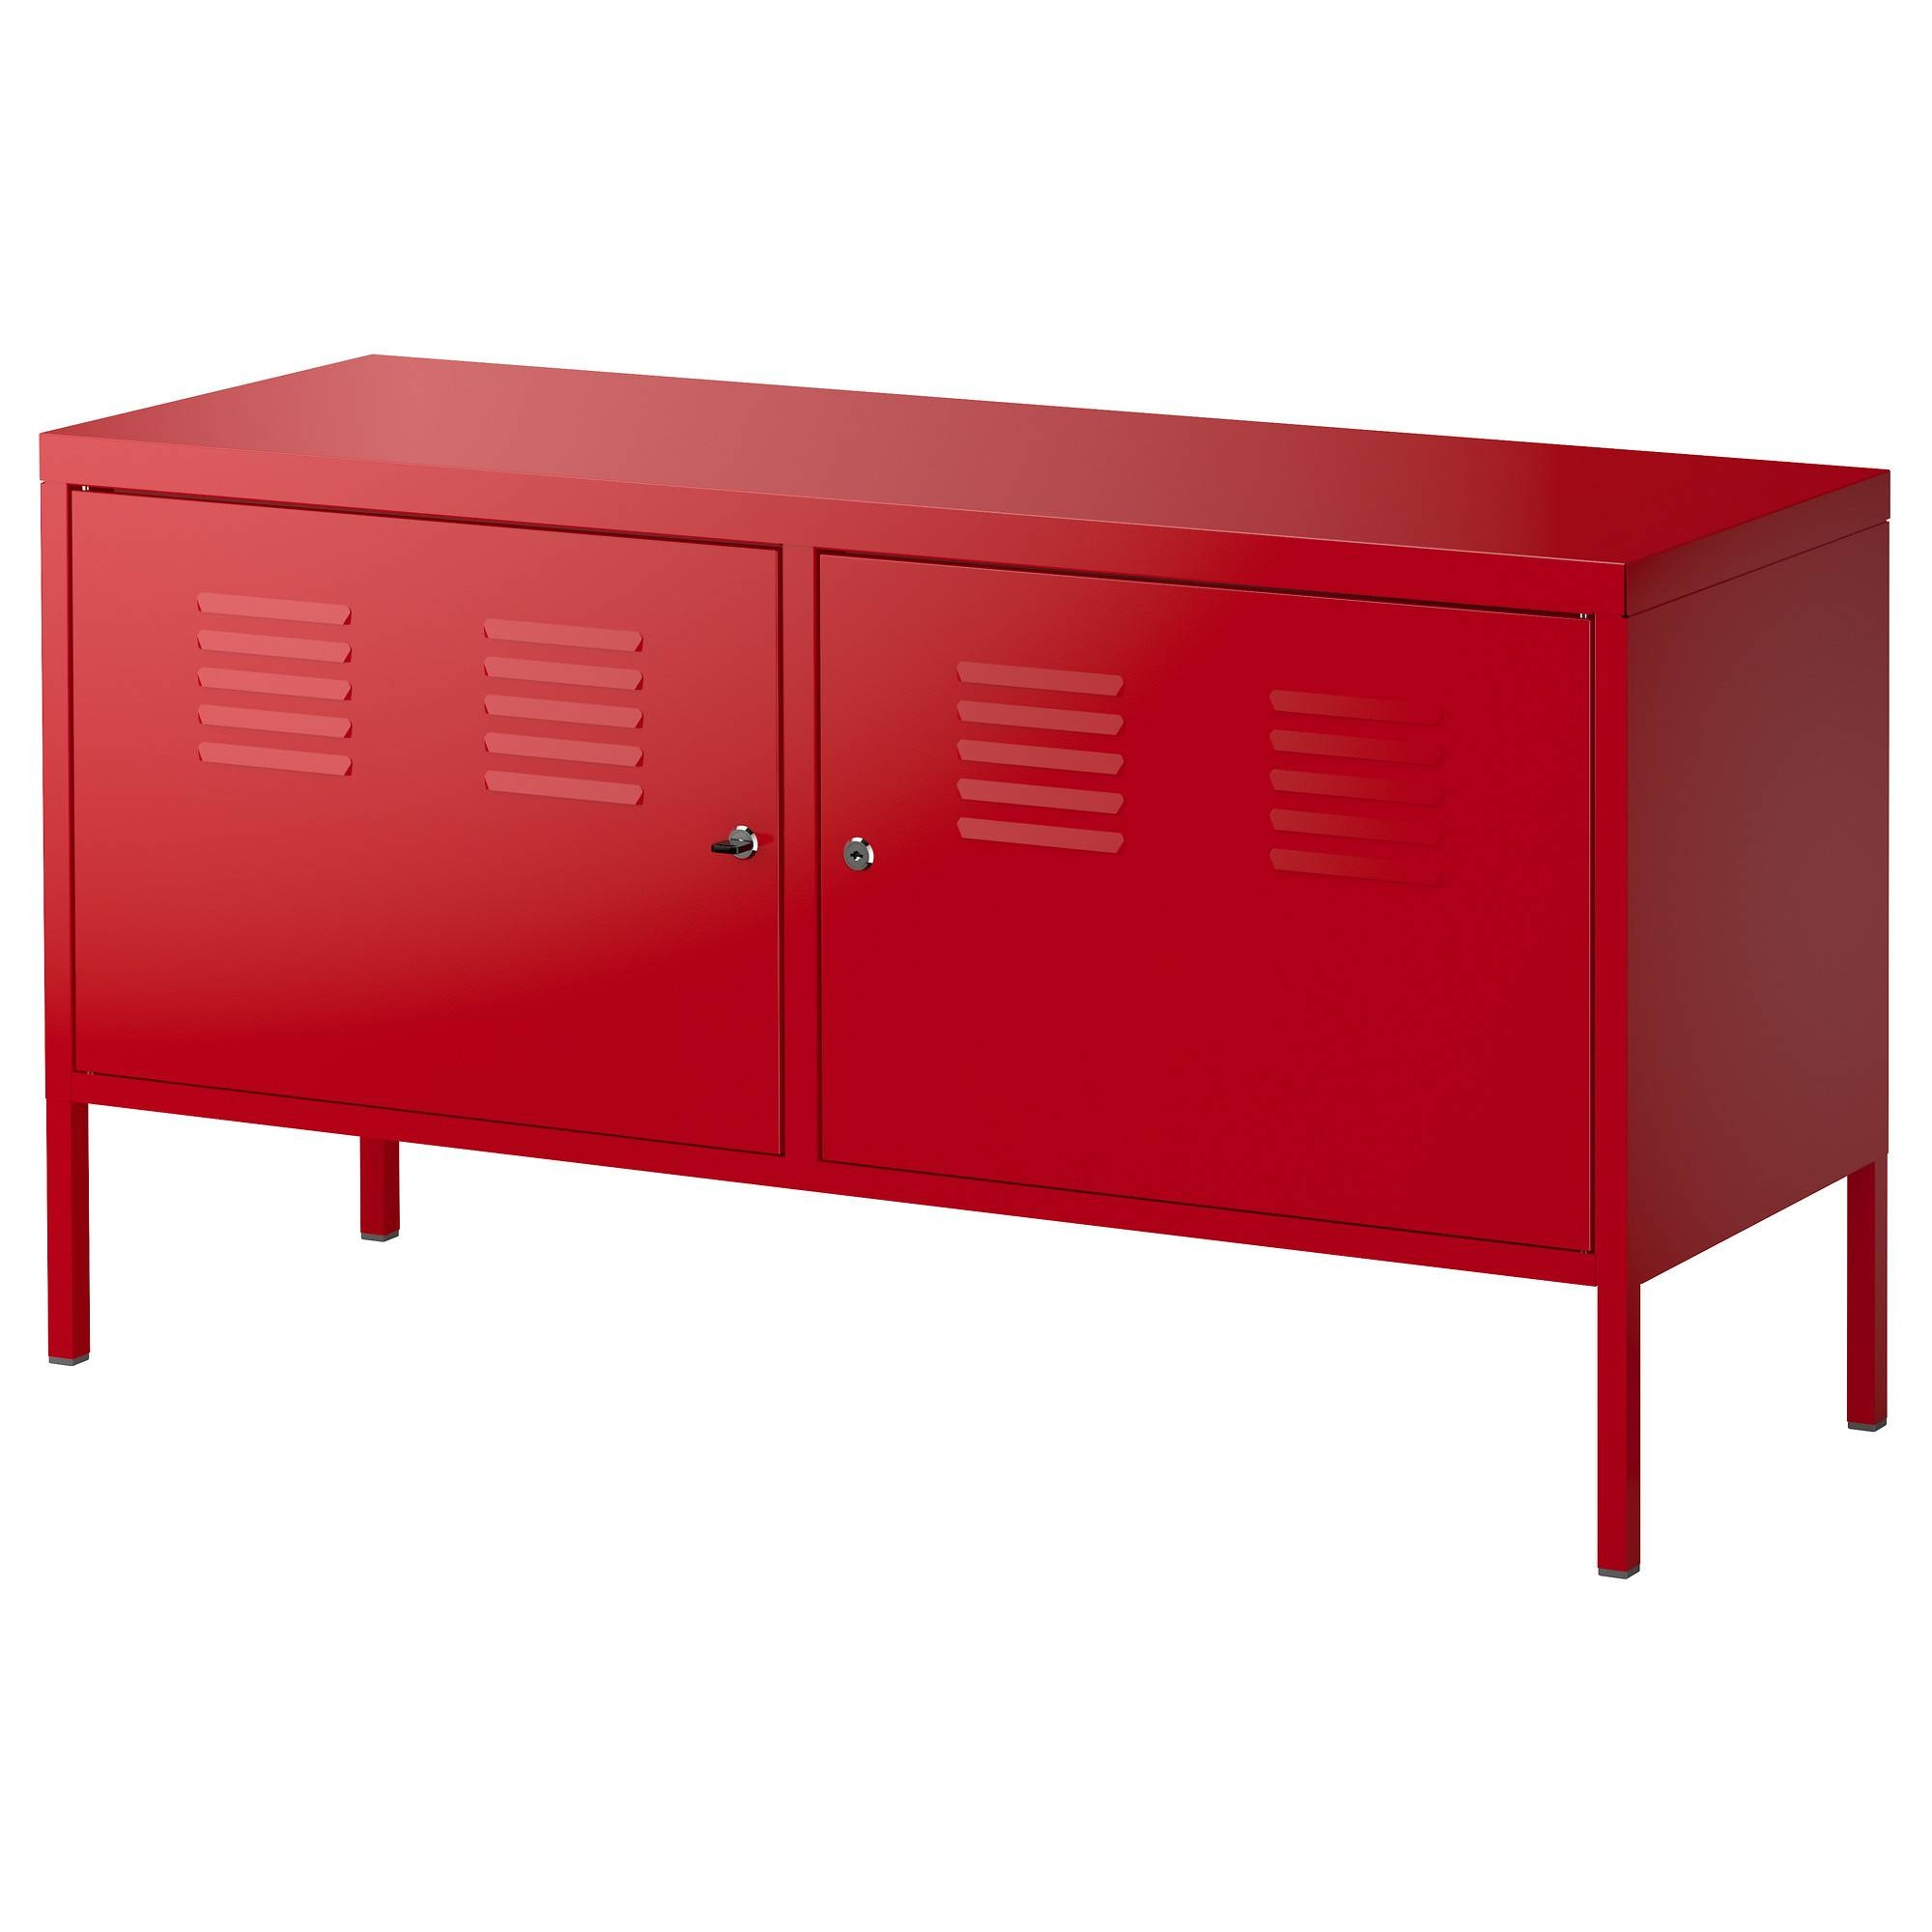 Ikea Ps Cabinet – Red – Ikea With Regard To Most Recently Released Red Sideboards Buffets (#3 of 15)